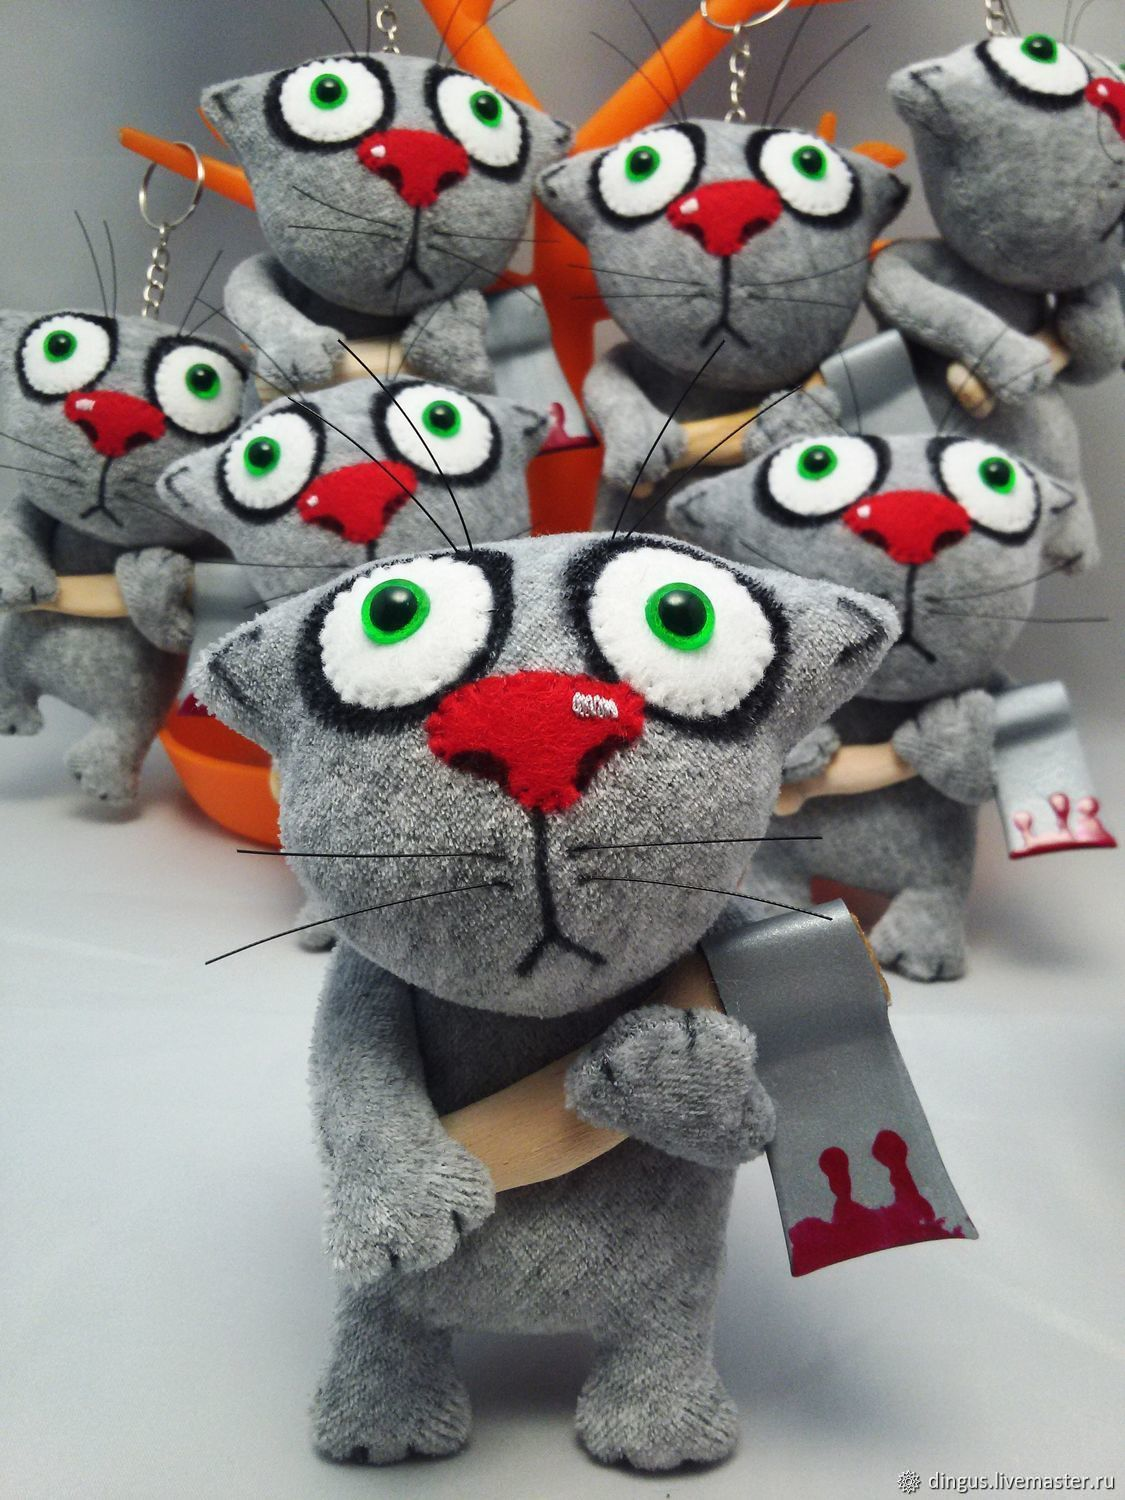 He first started! Keychain grey cat with an axe by Vasya Lozhkin, Stuffed Toys, Moscow,  Фото №1